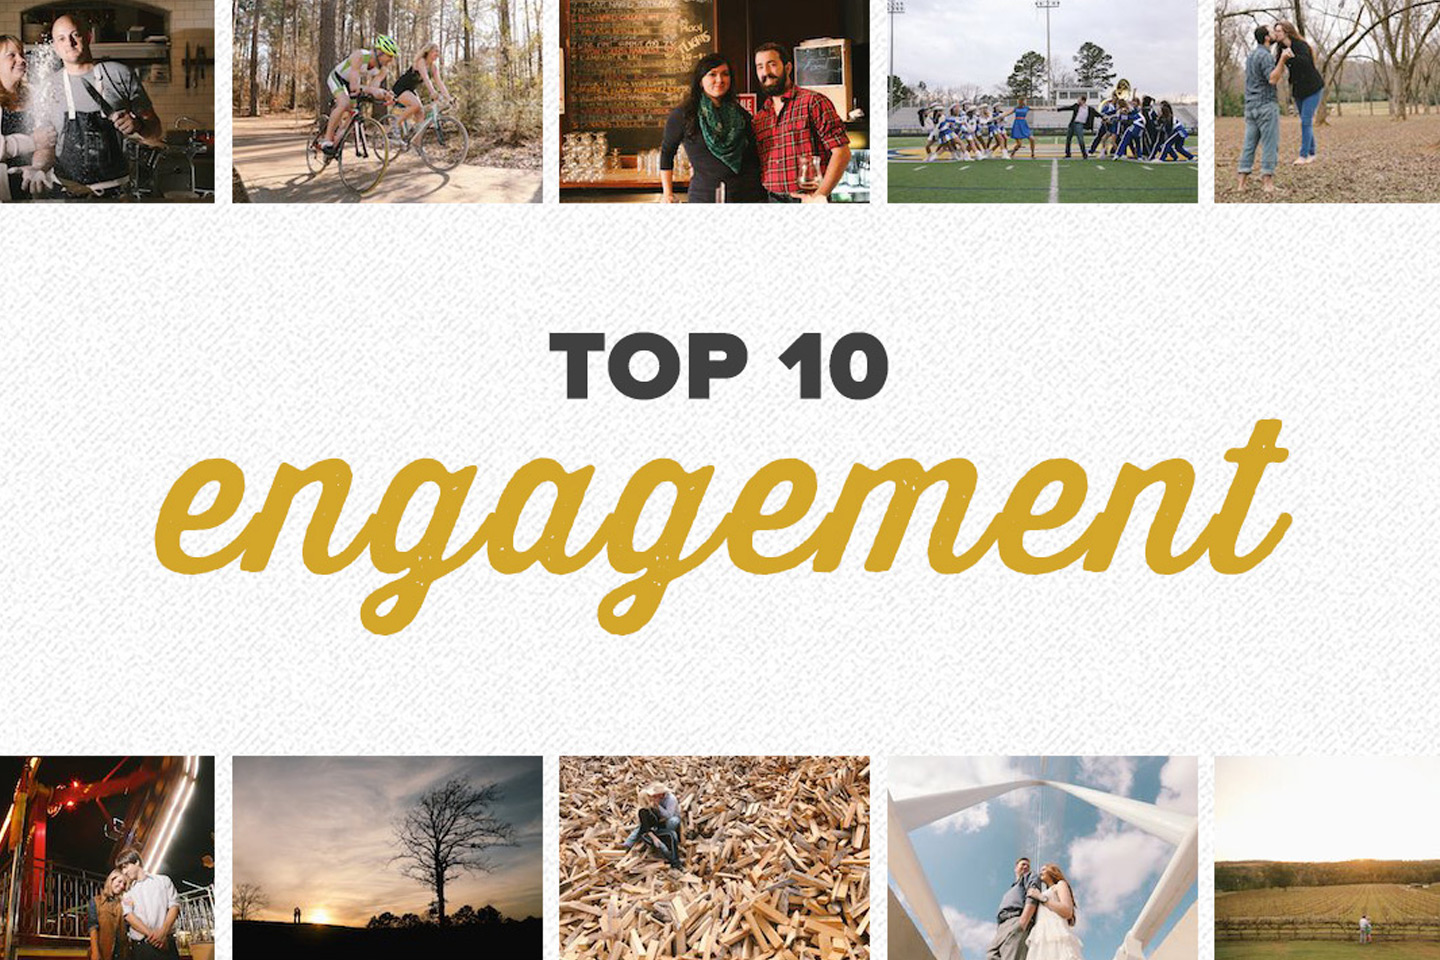 Top 10 2014 | Engagement